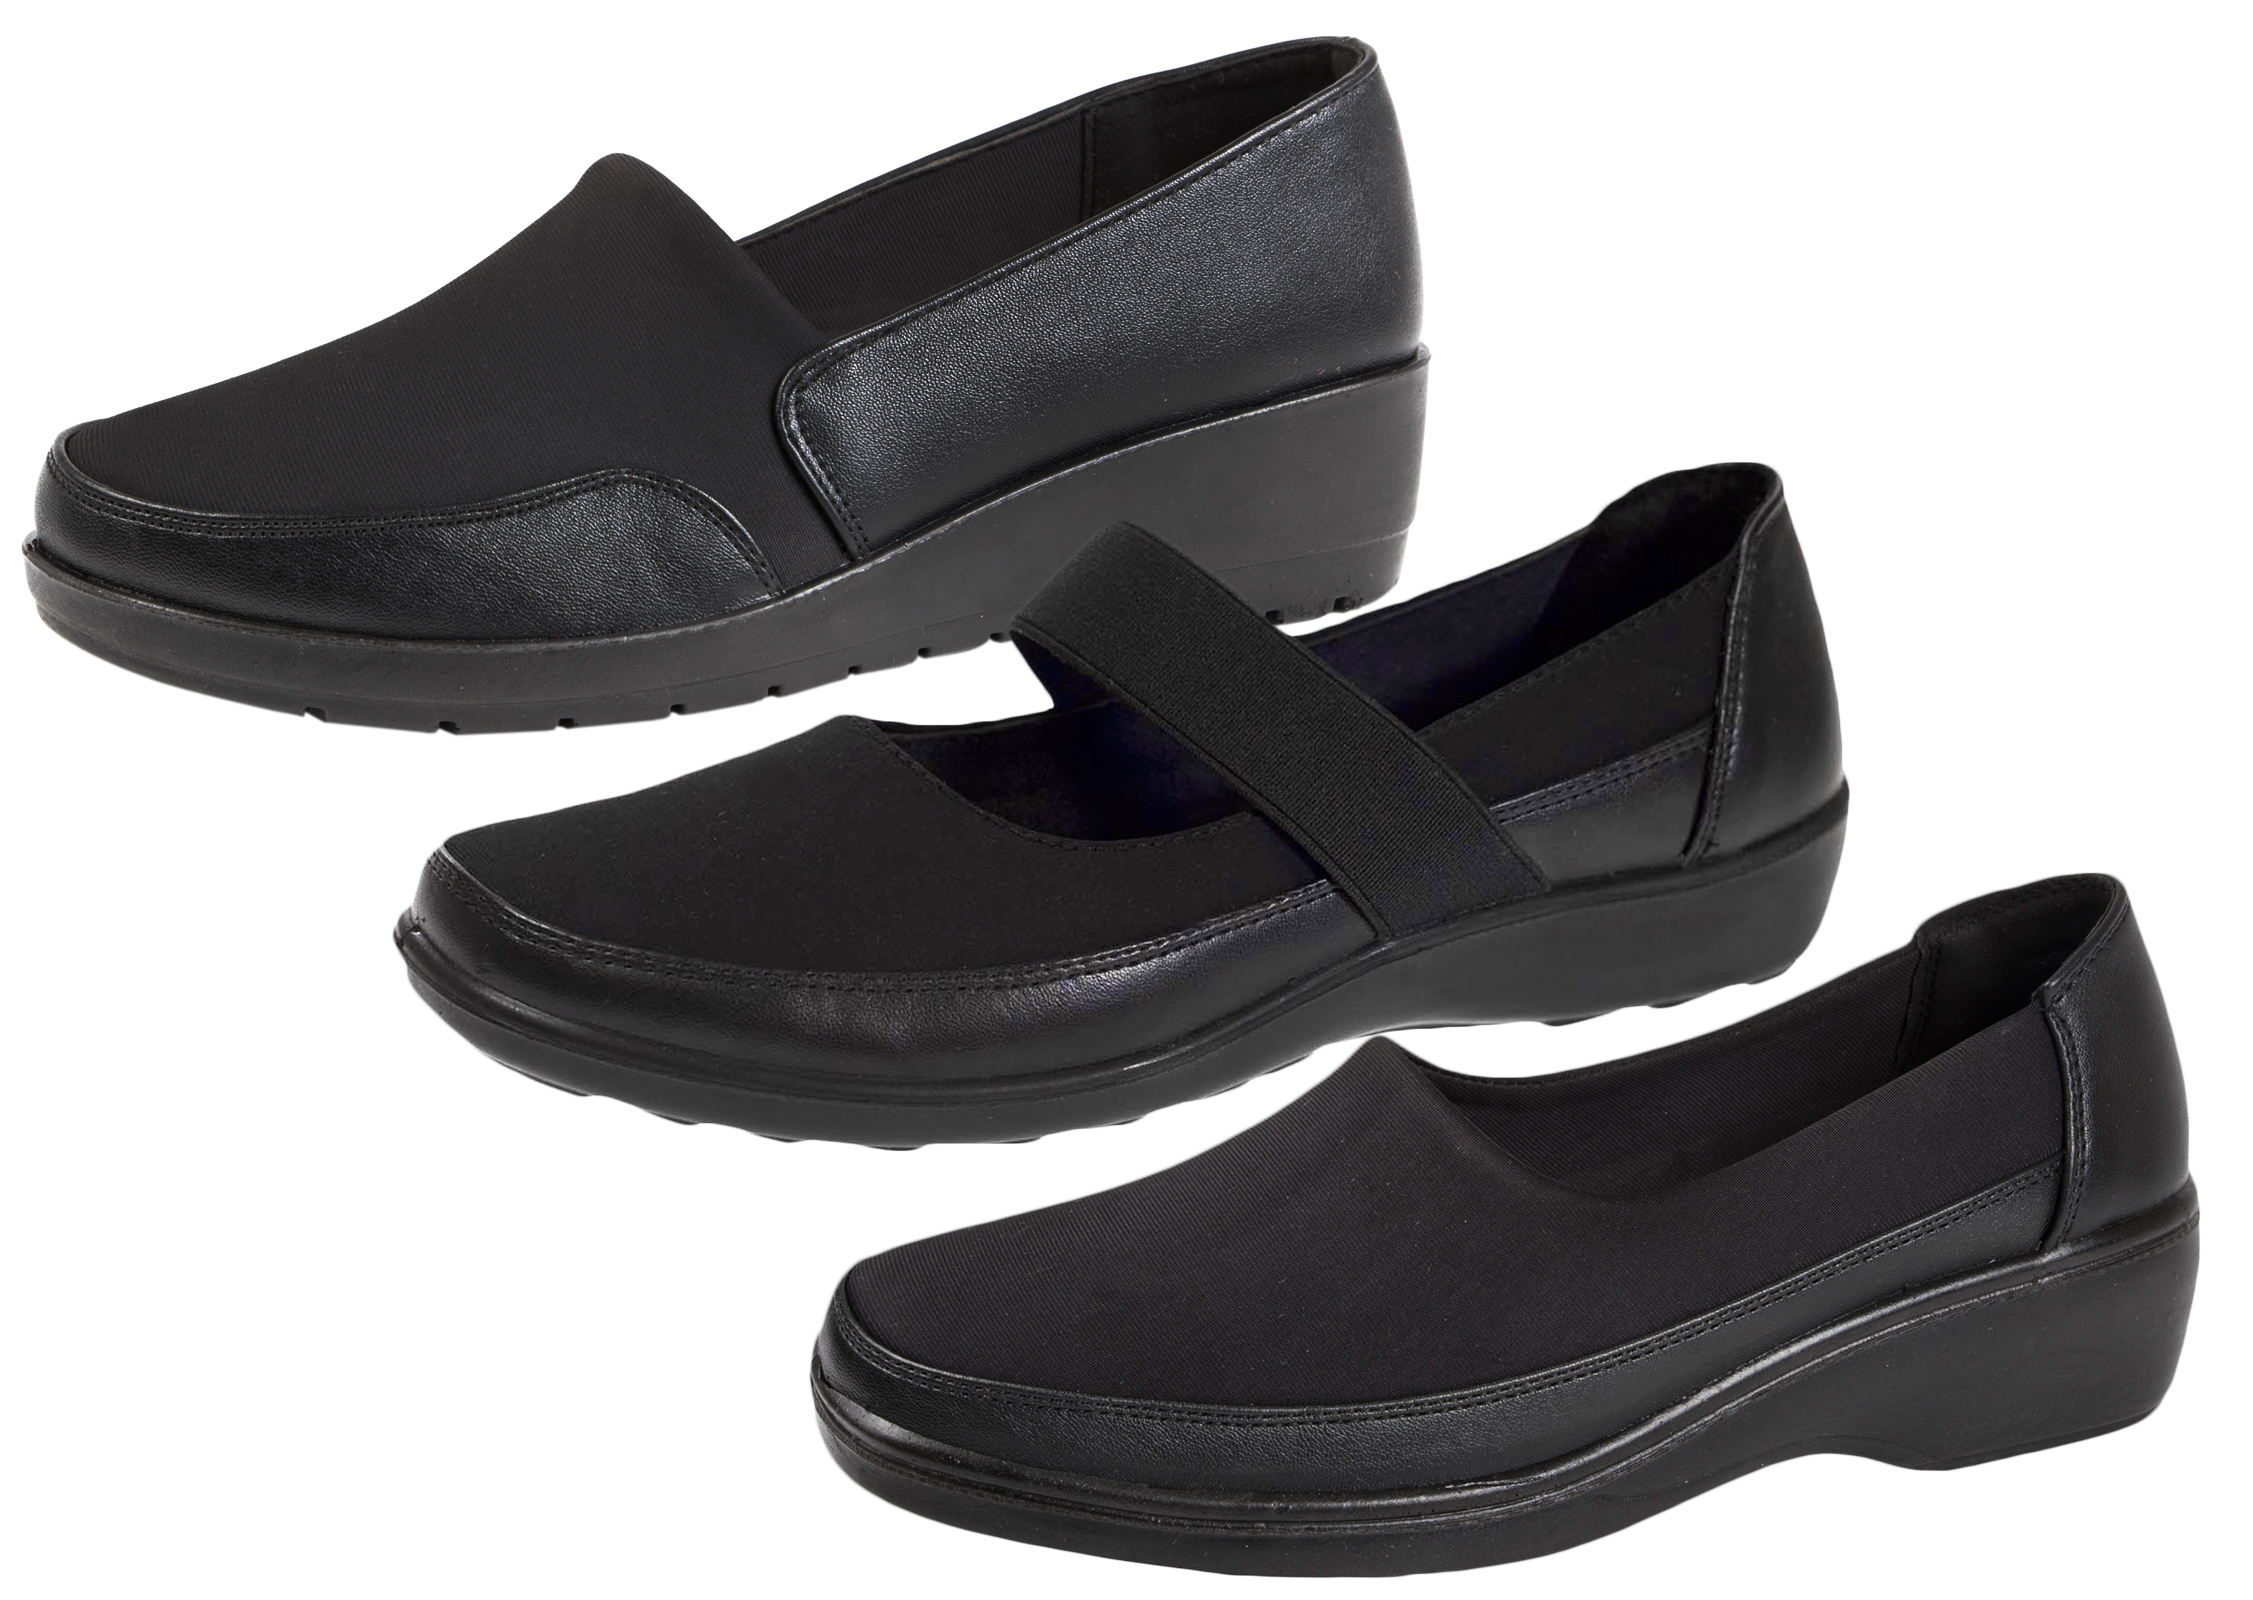 women's dress shoes with memory foam